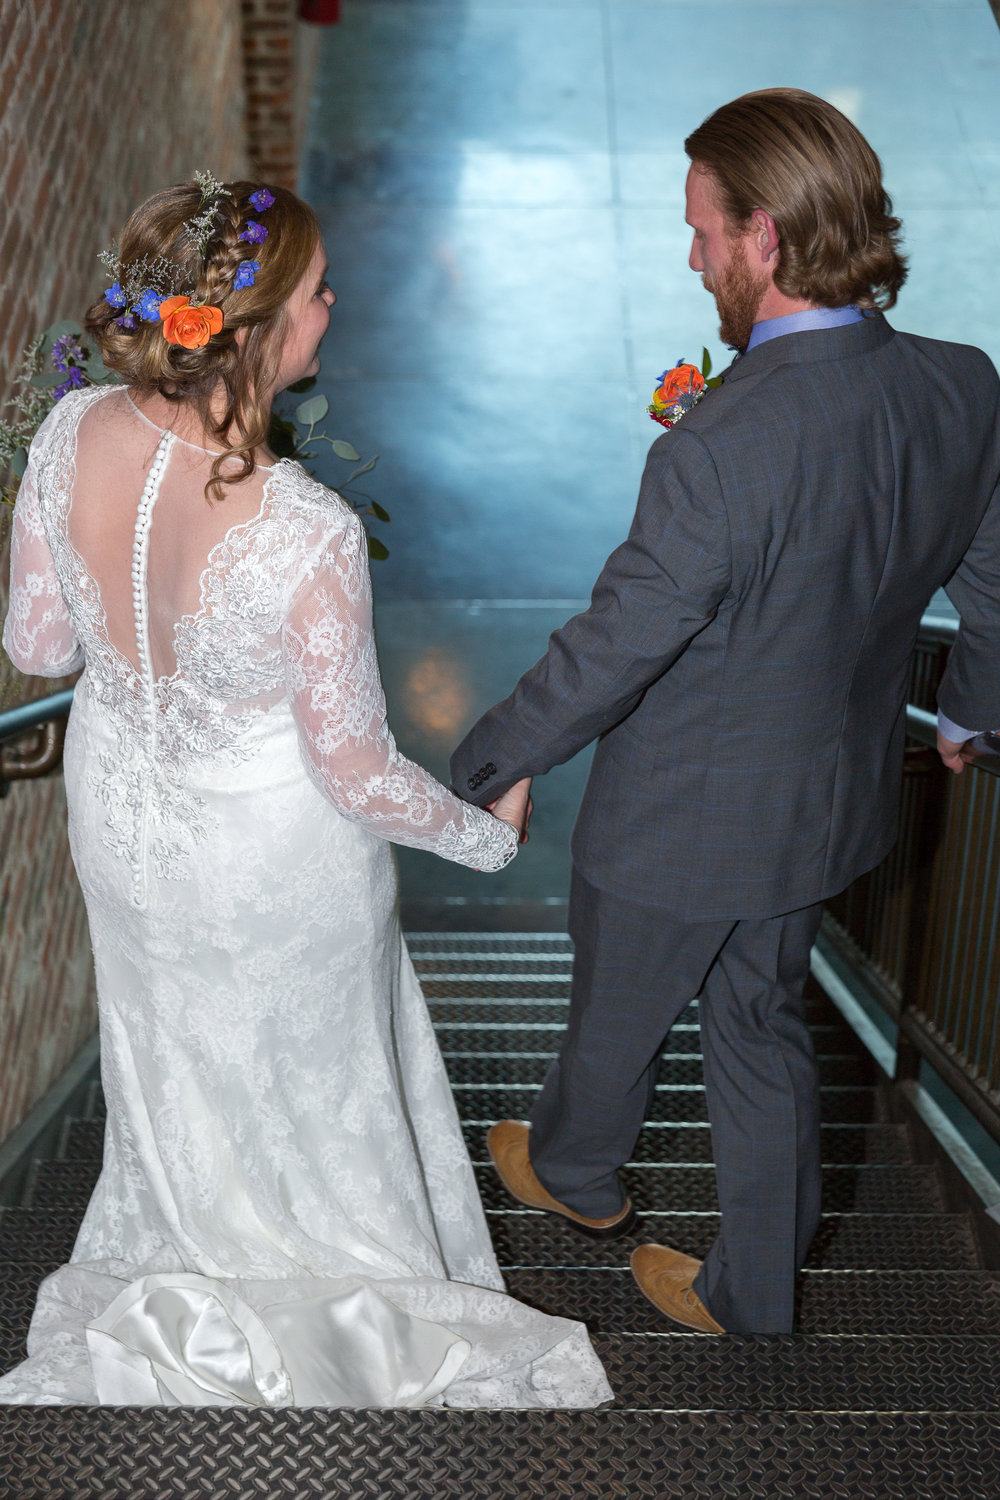 Bride and groom walk down the stairs after their wedding ceremony.